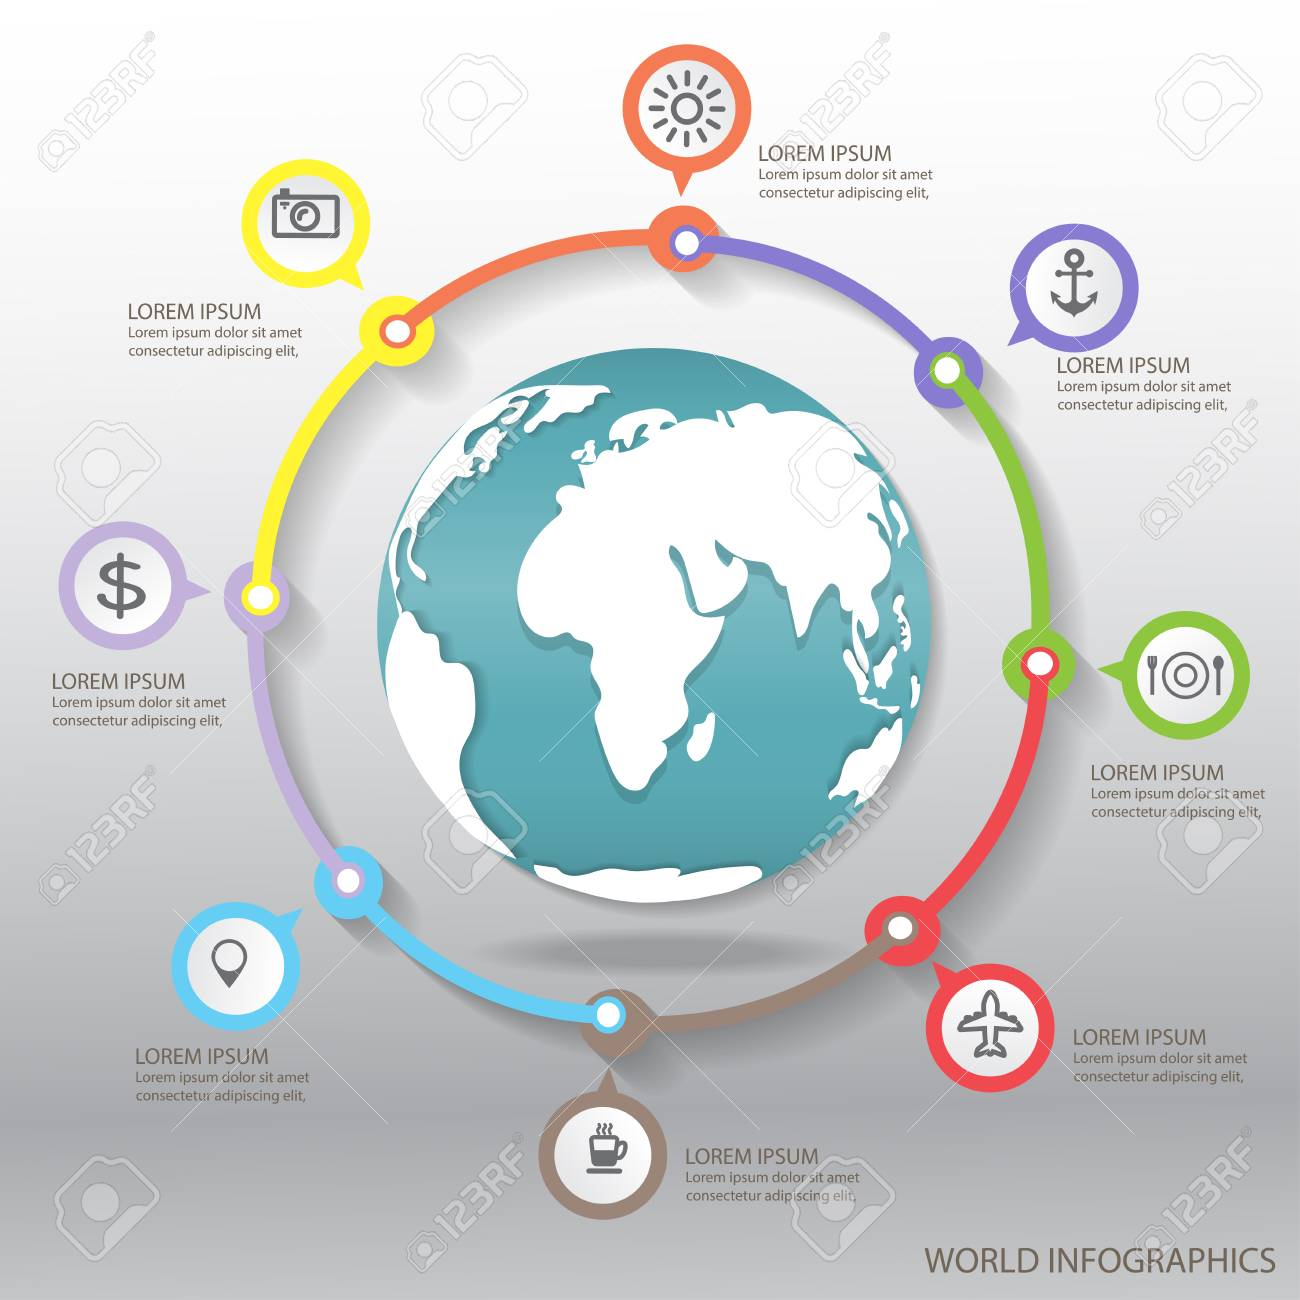 world diagram icon wiring diagram todays